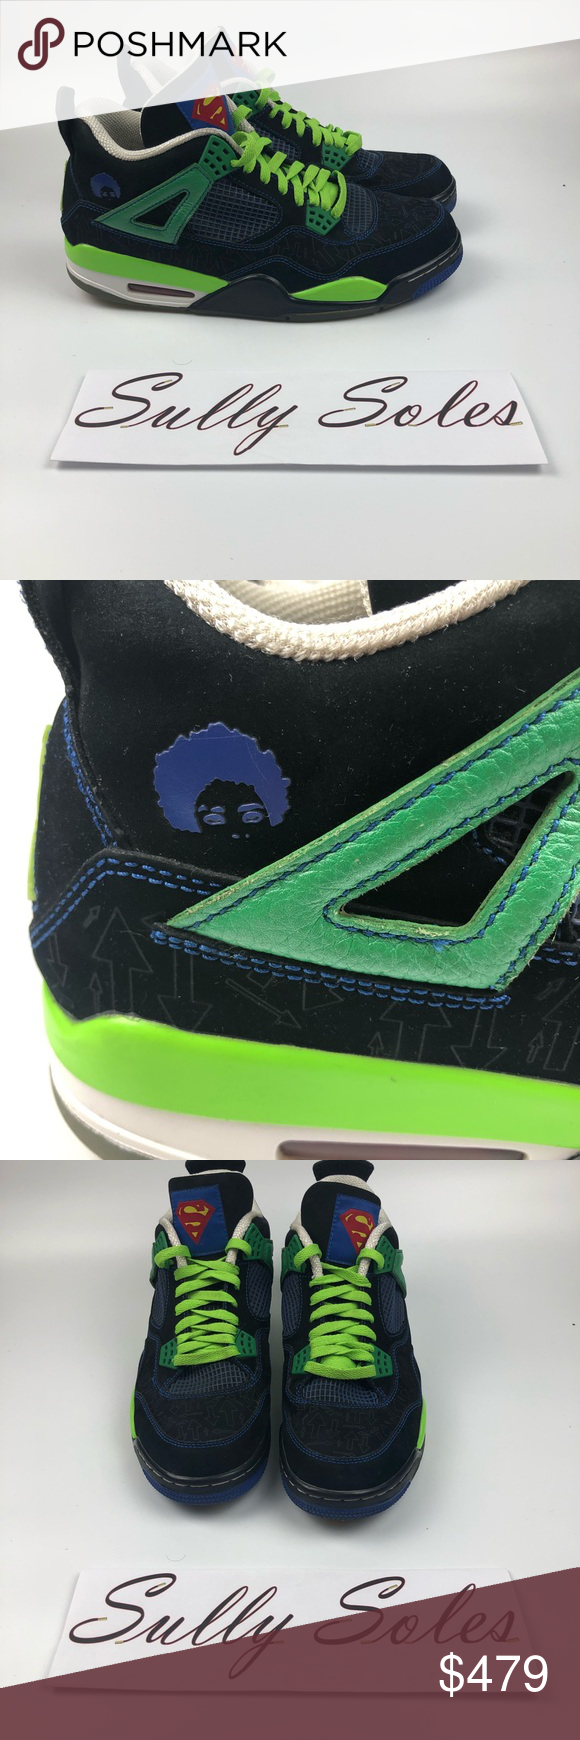 a91d22c8f02bcc Jordan retro 4 doernbecher size 12 with box Welcome Questions  Usually  Answered Within The Hour